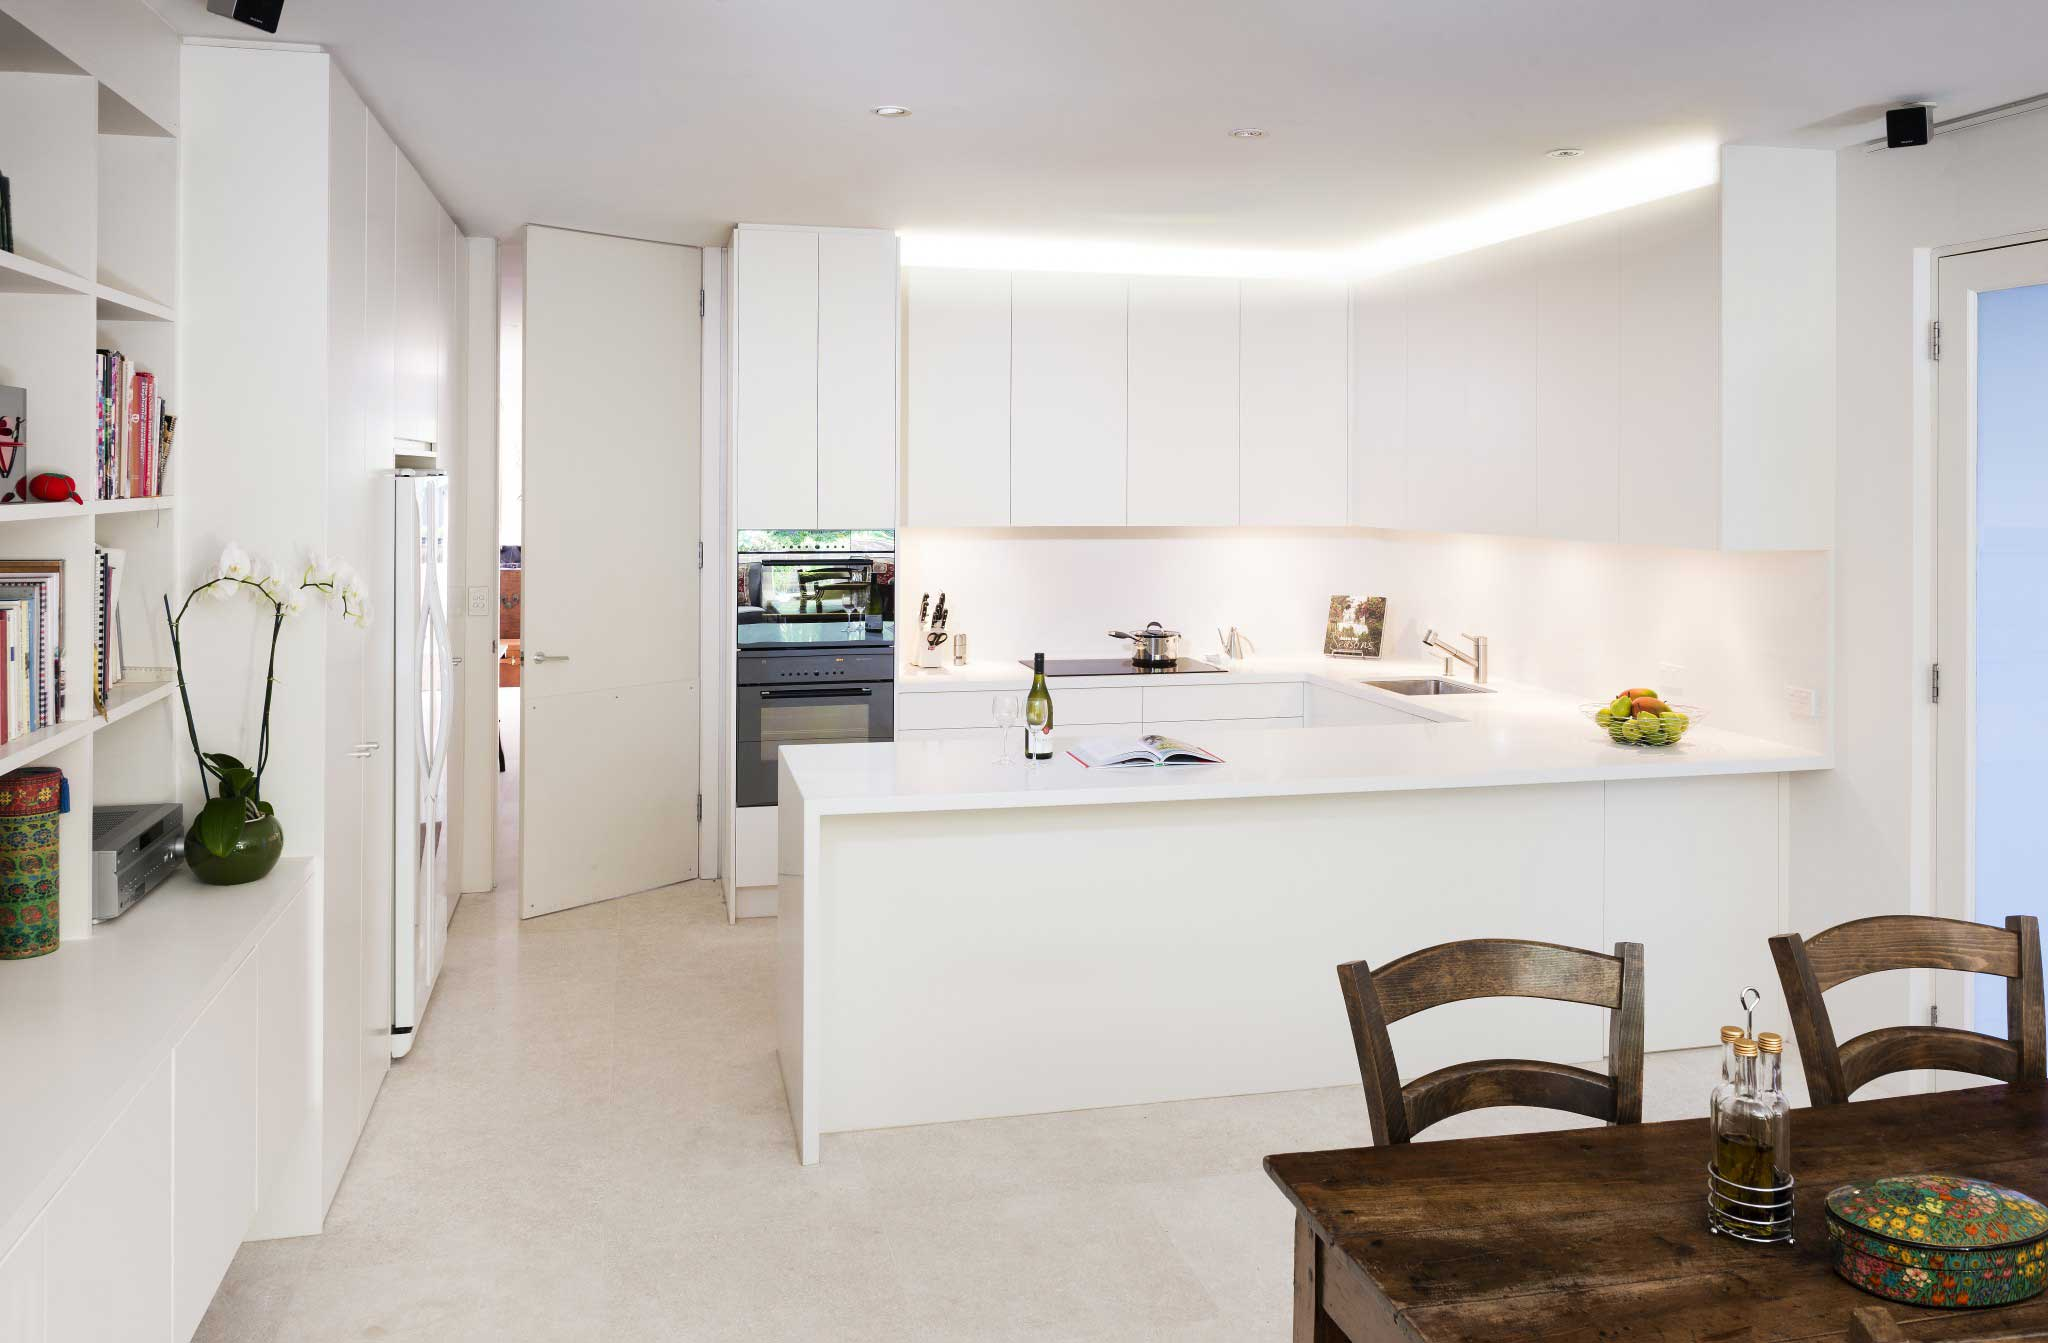 Hamptons kitchen styles melbourne rosemount kitchens for Kitchen designs melbourne